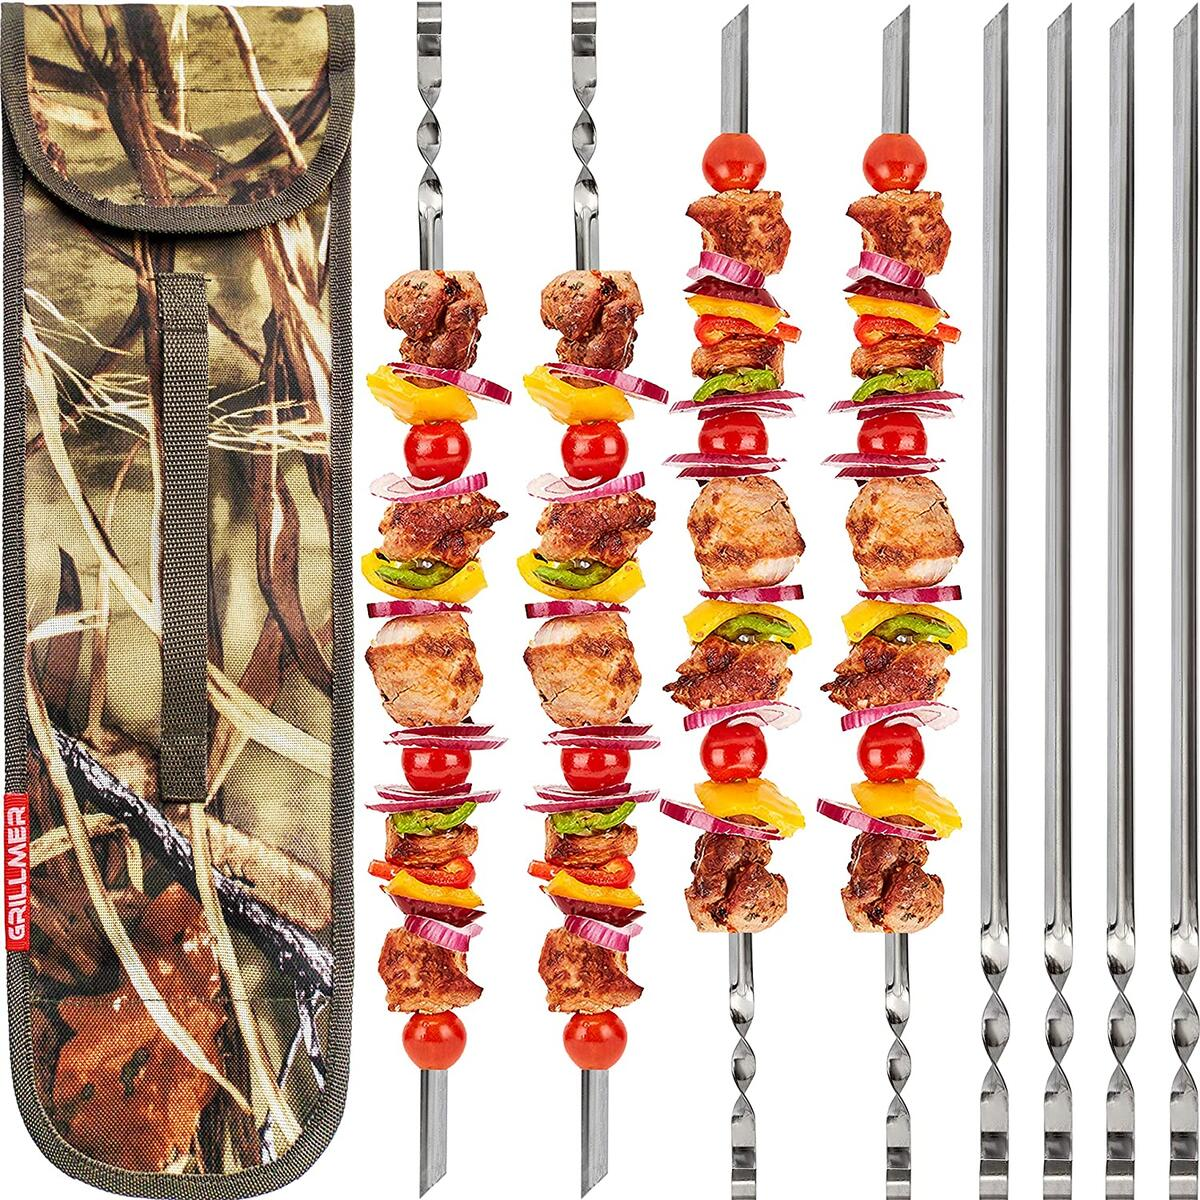 BBQ Skewers 22 Inch Stainless Steel